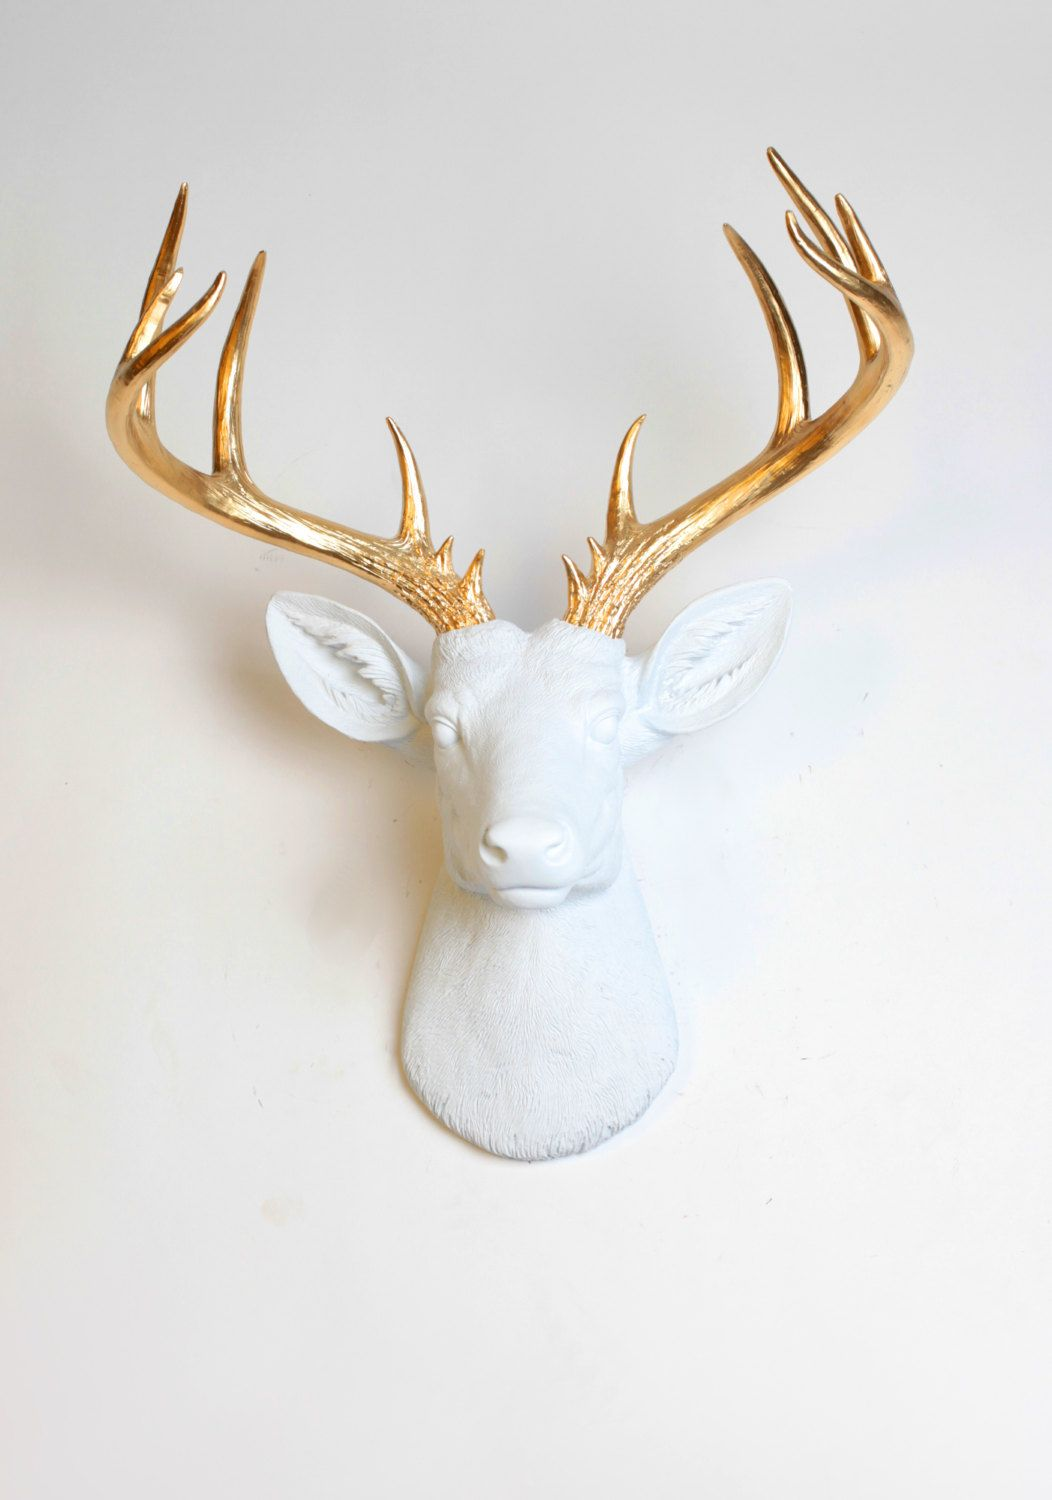 Faux taxidermy deer head wall mount dcor the xl alfred large faux taxidermy deer head wall mount dcor the xl alfred large deer gold antlers amipublicfo Image collections